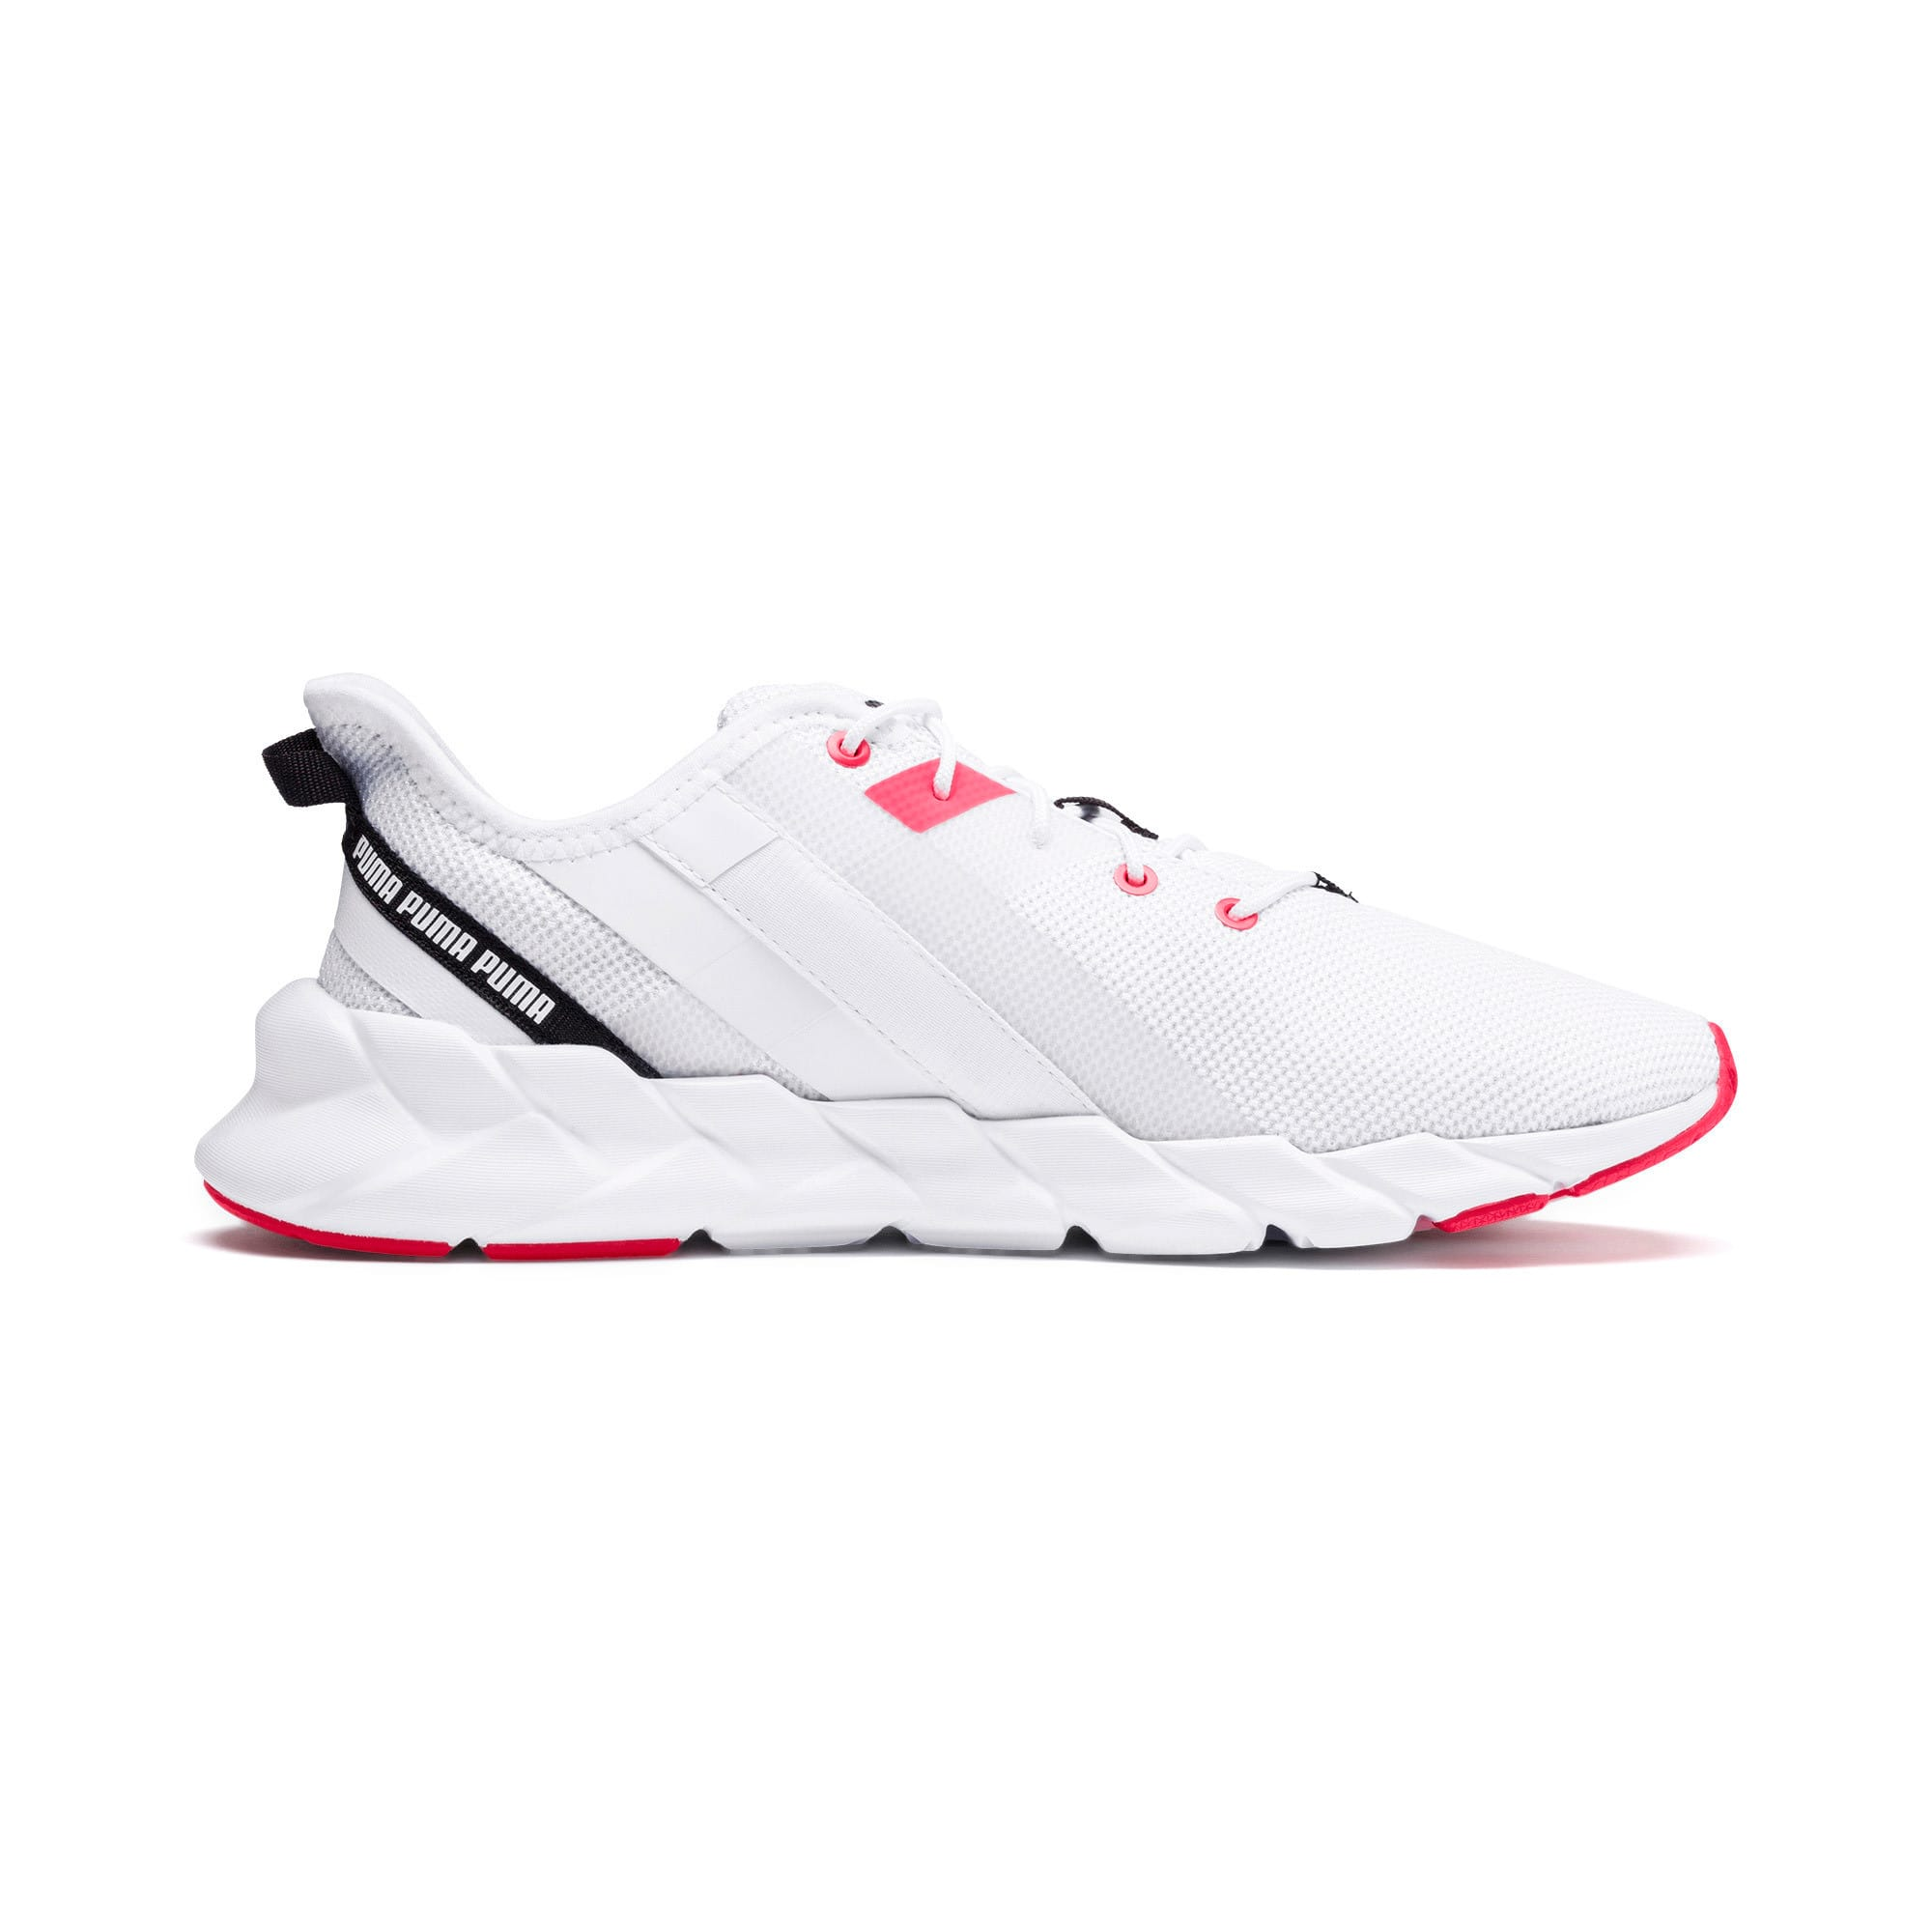 Thumbnail 9 of Weave XT Women's Training Shoes, Puma White-Pink Alert, medium